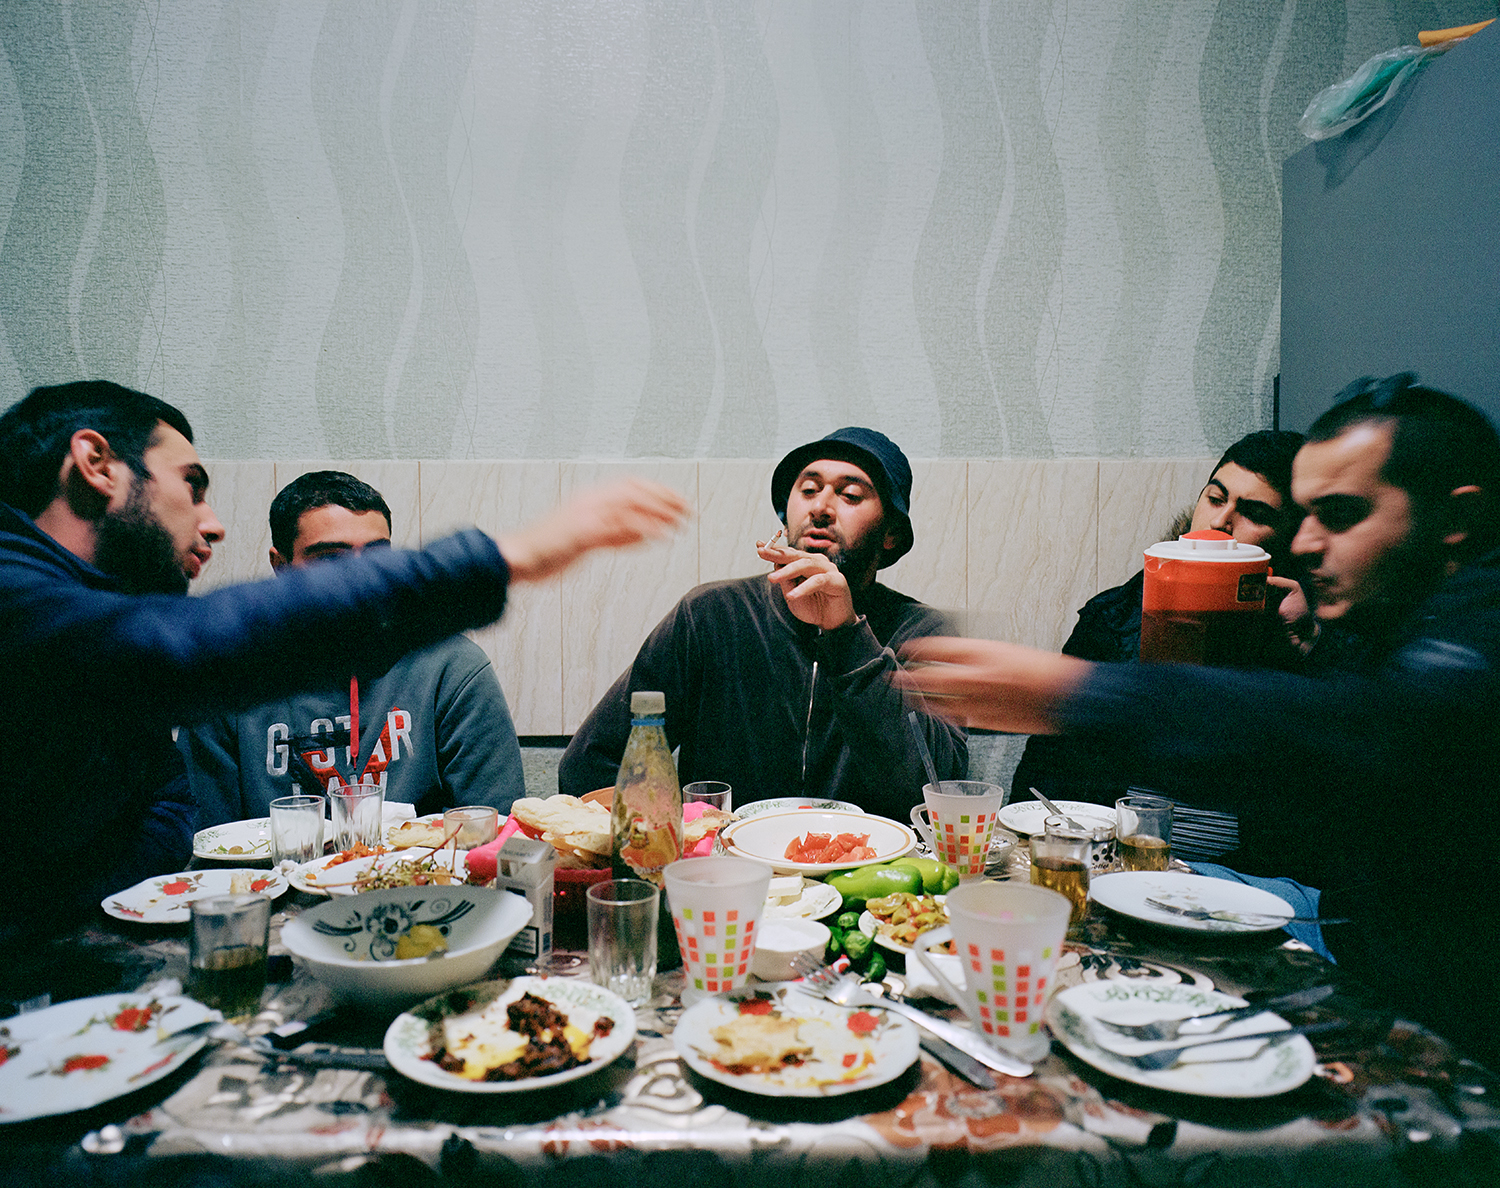 Steffen Junghanß - The Invisible Border group of boys smoke and eat dinner together